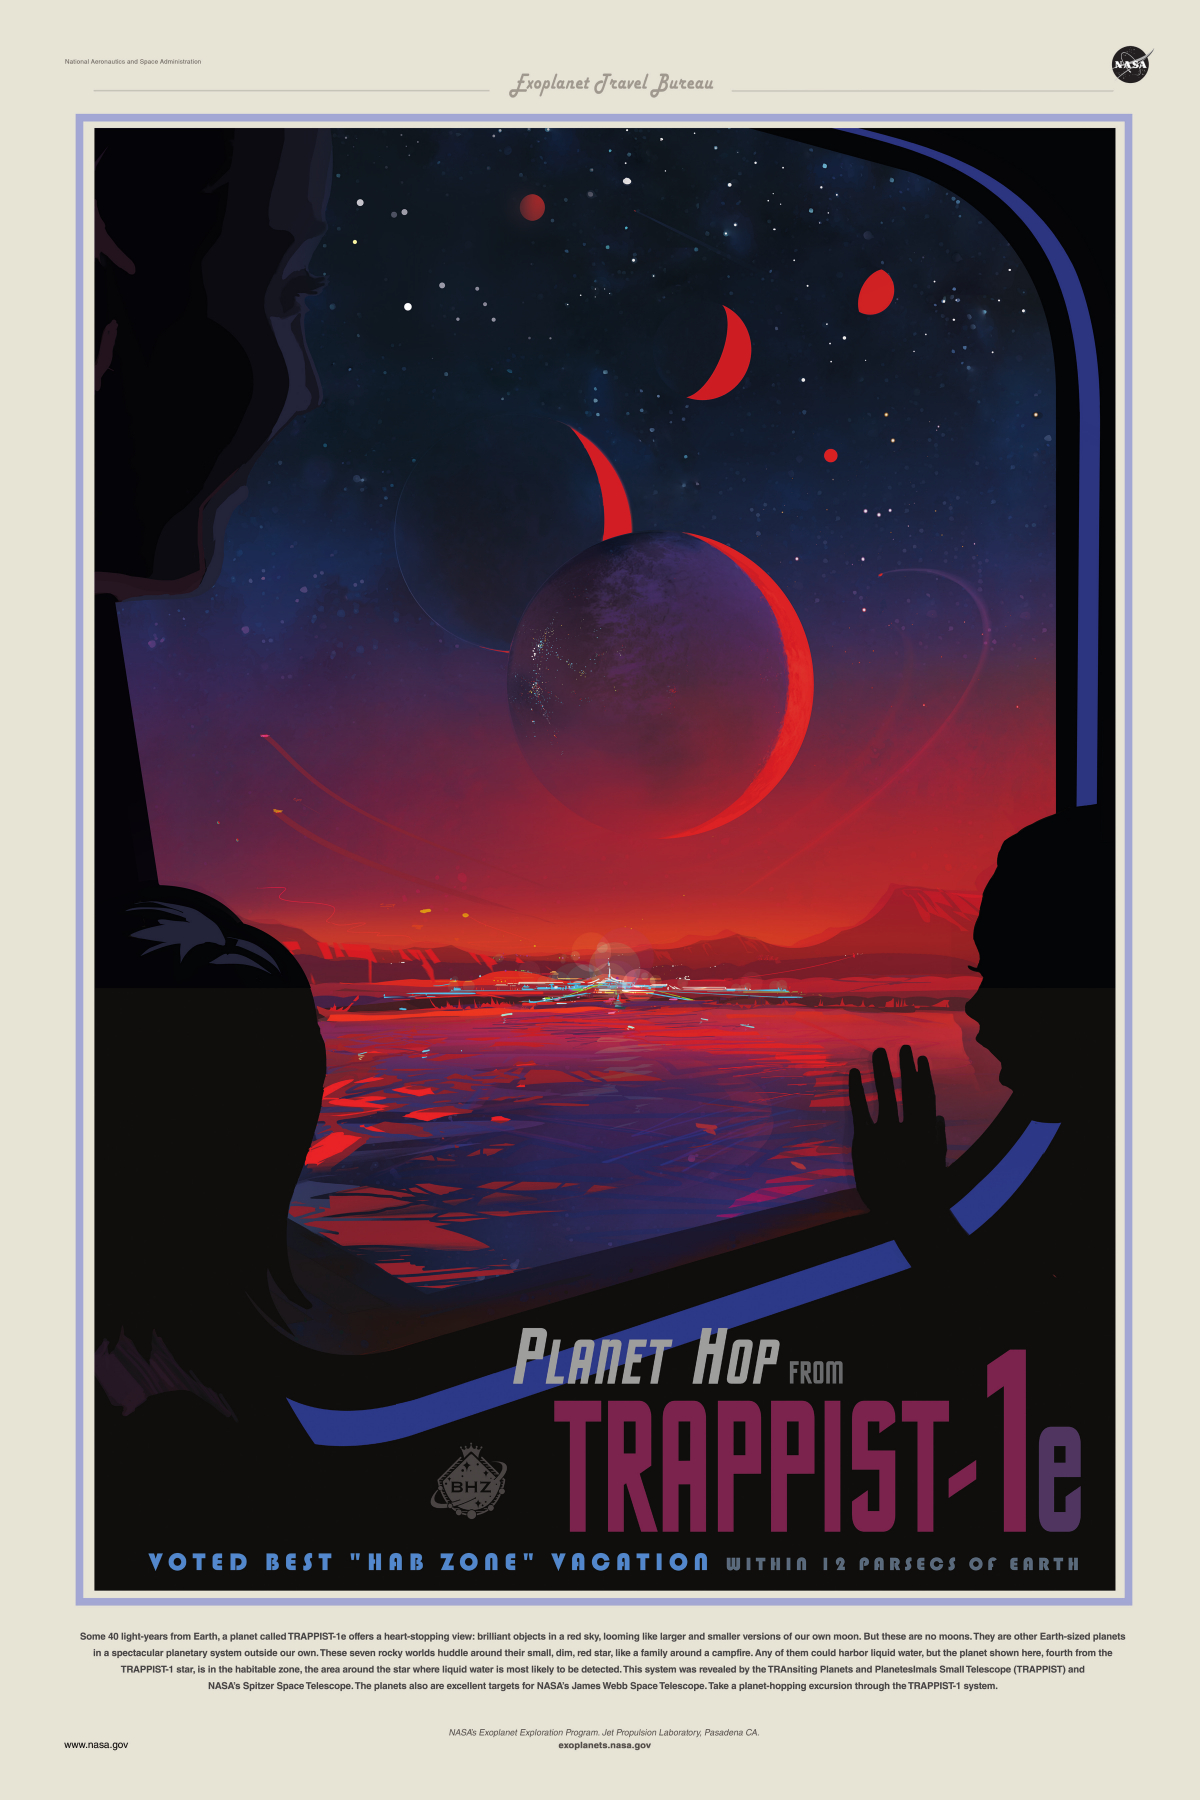 Planet Hop From TRAPPIST 1e U2013 Exoplanet Exploration